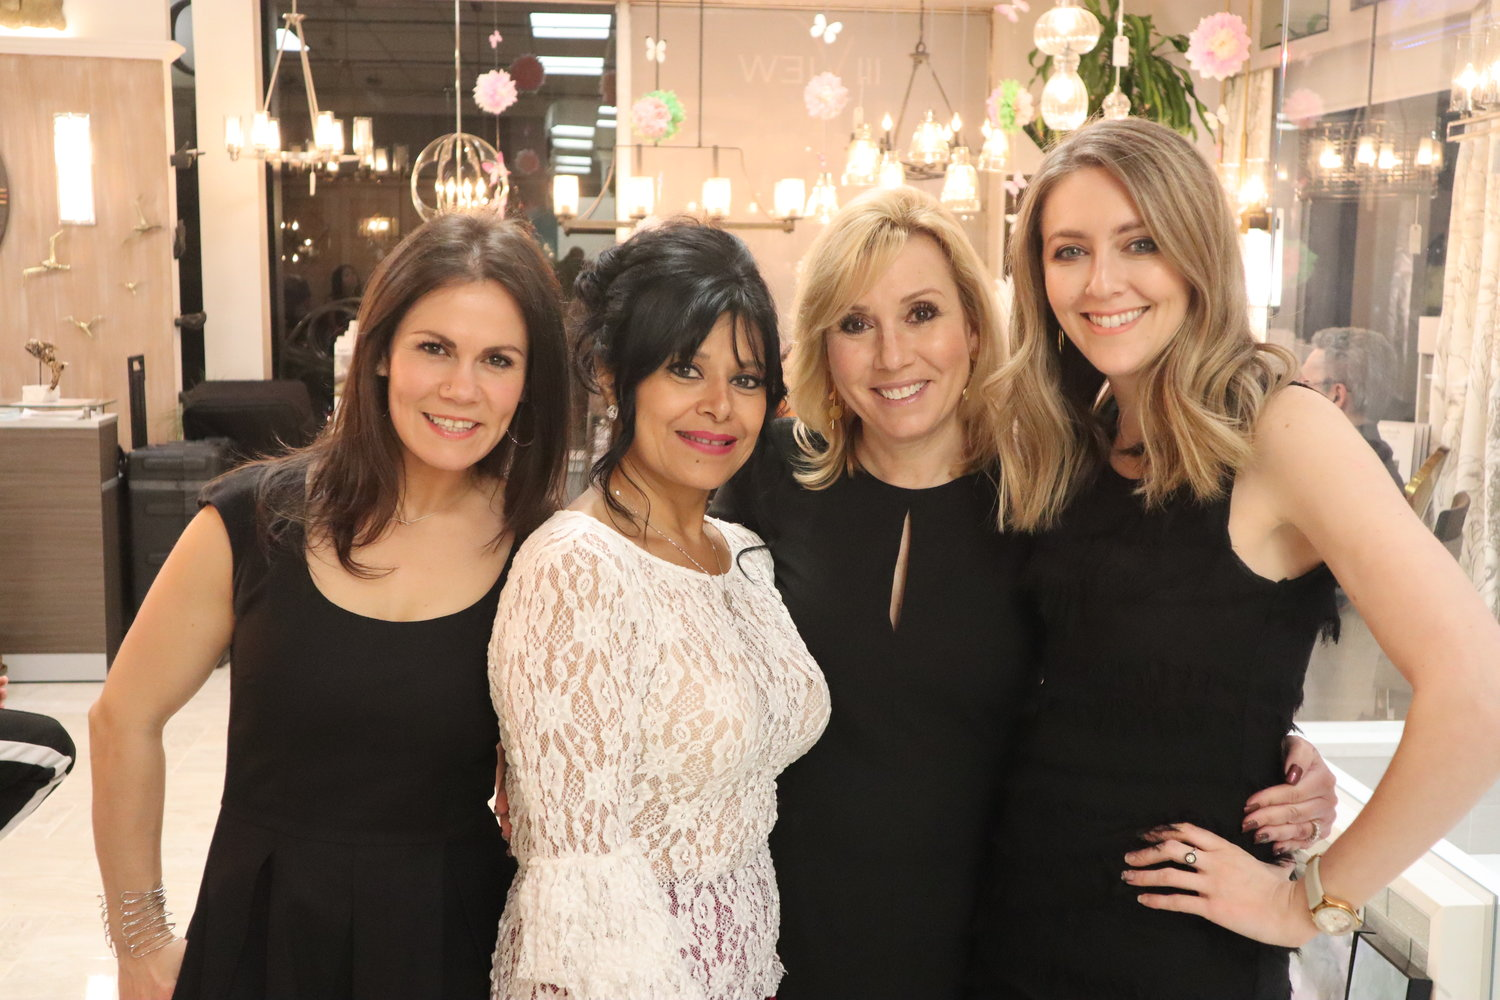 Seven years after being destroyed by Hurricane Sandy, the light still shines on Salcedo's home design company. The III View Design Team's Sarah Ann Morales, left, Salcedo, Randi Satnick and Genie Zeller are open for business in Bellmore.